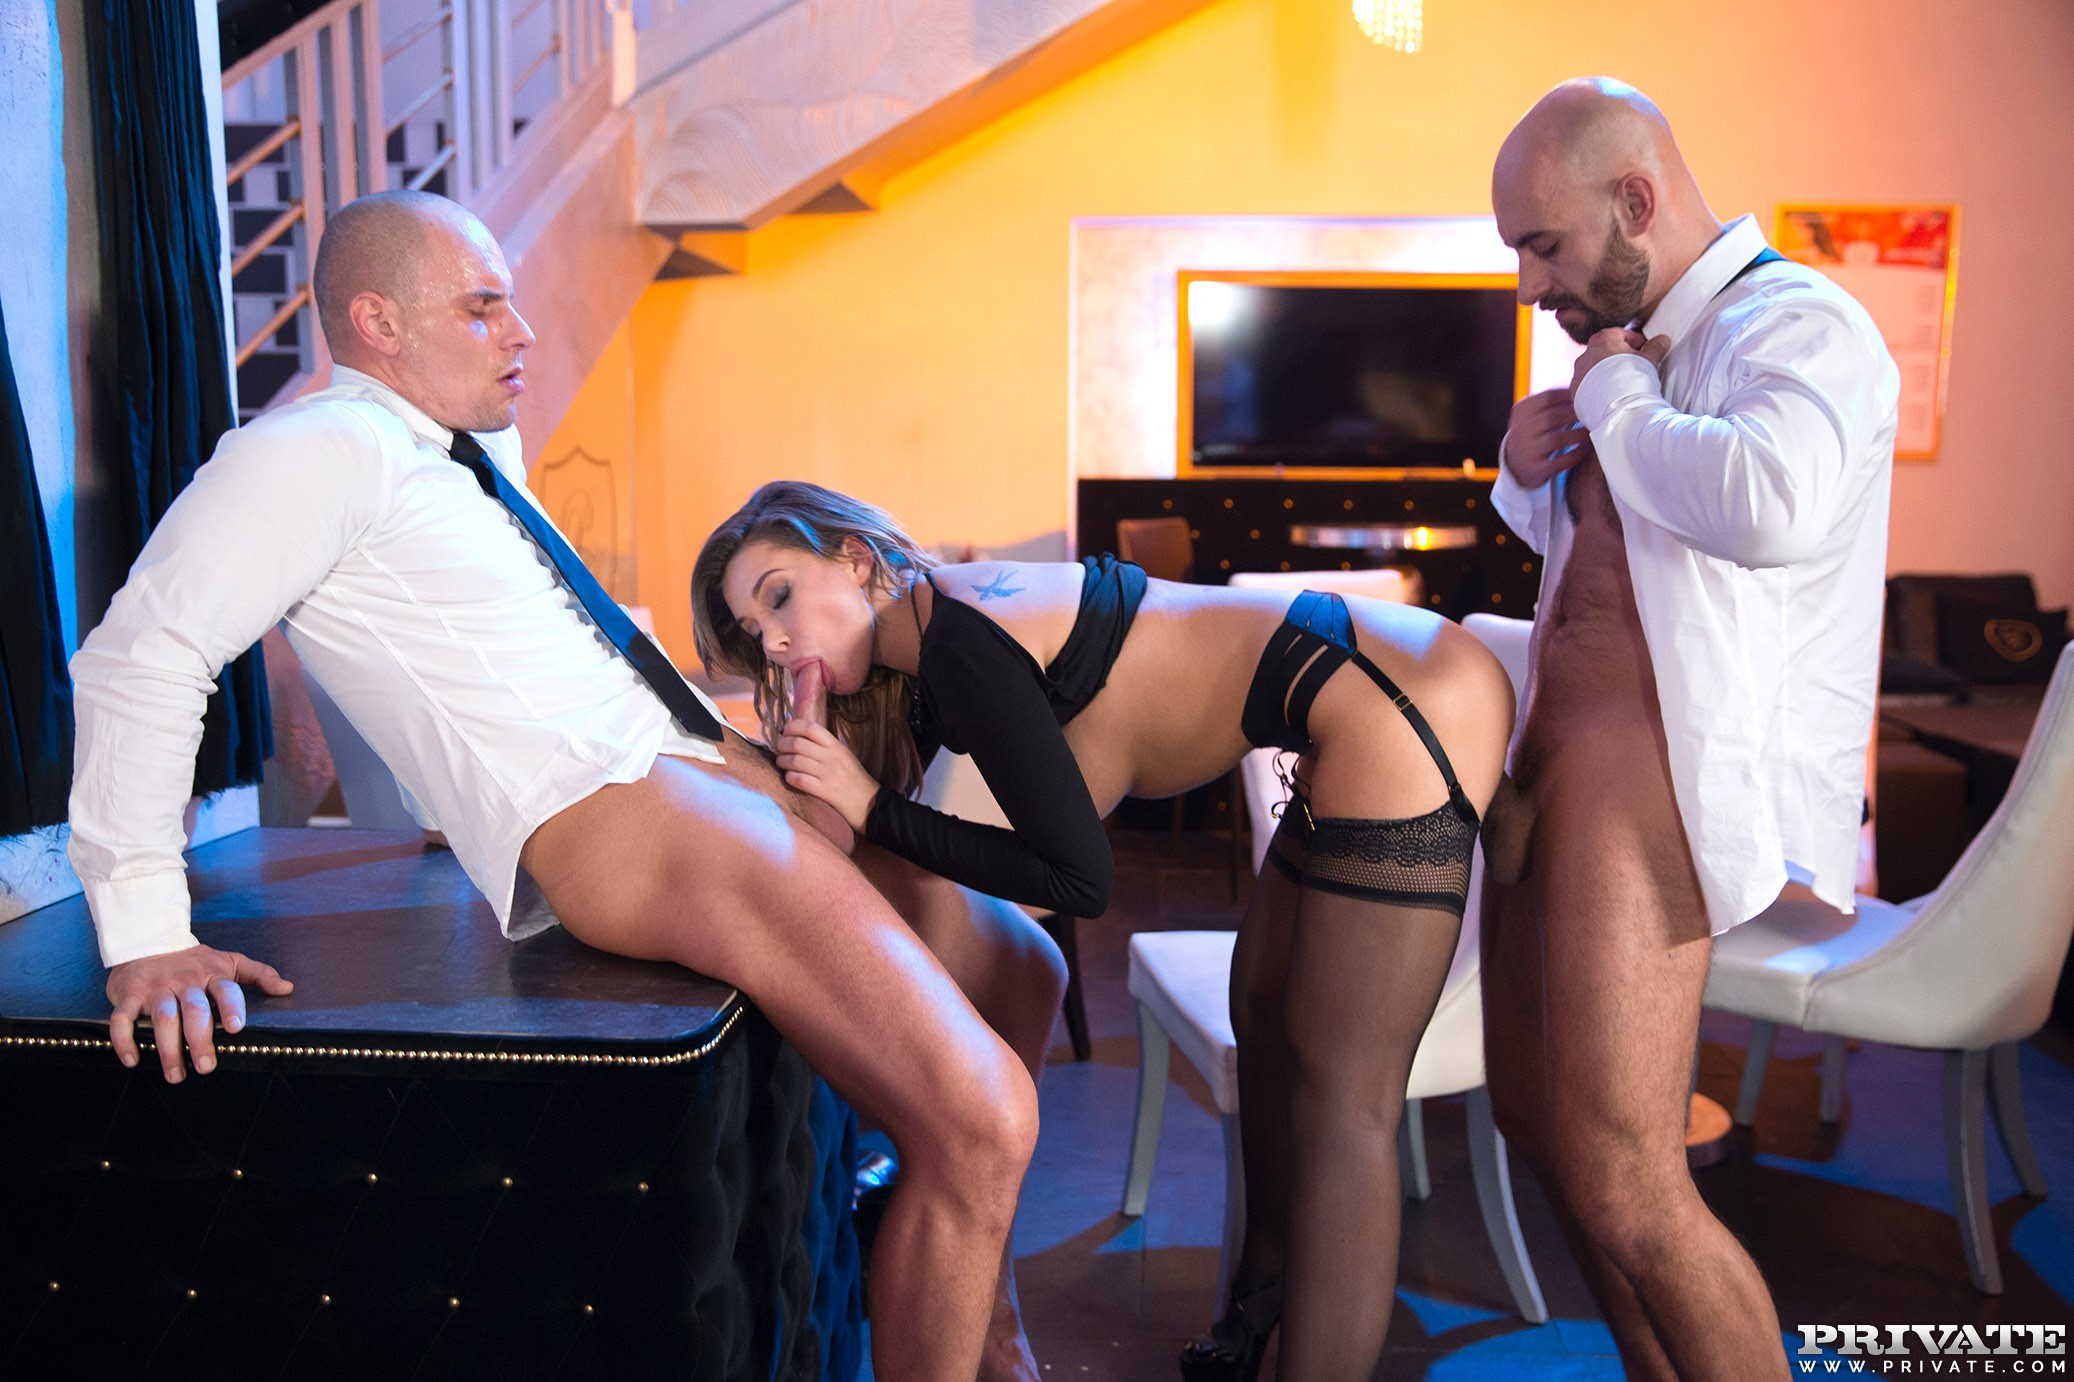 Texas wife gets fucked by bbc - 3 part 2